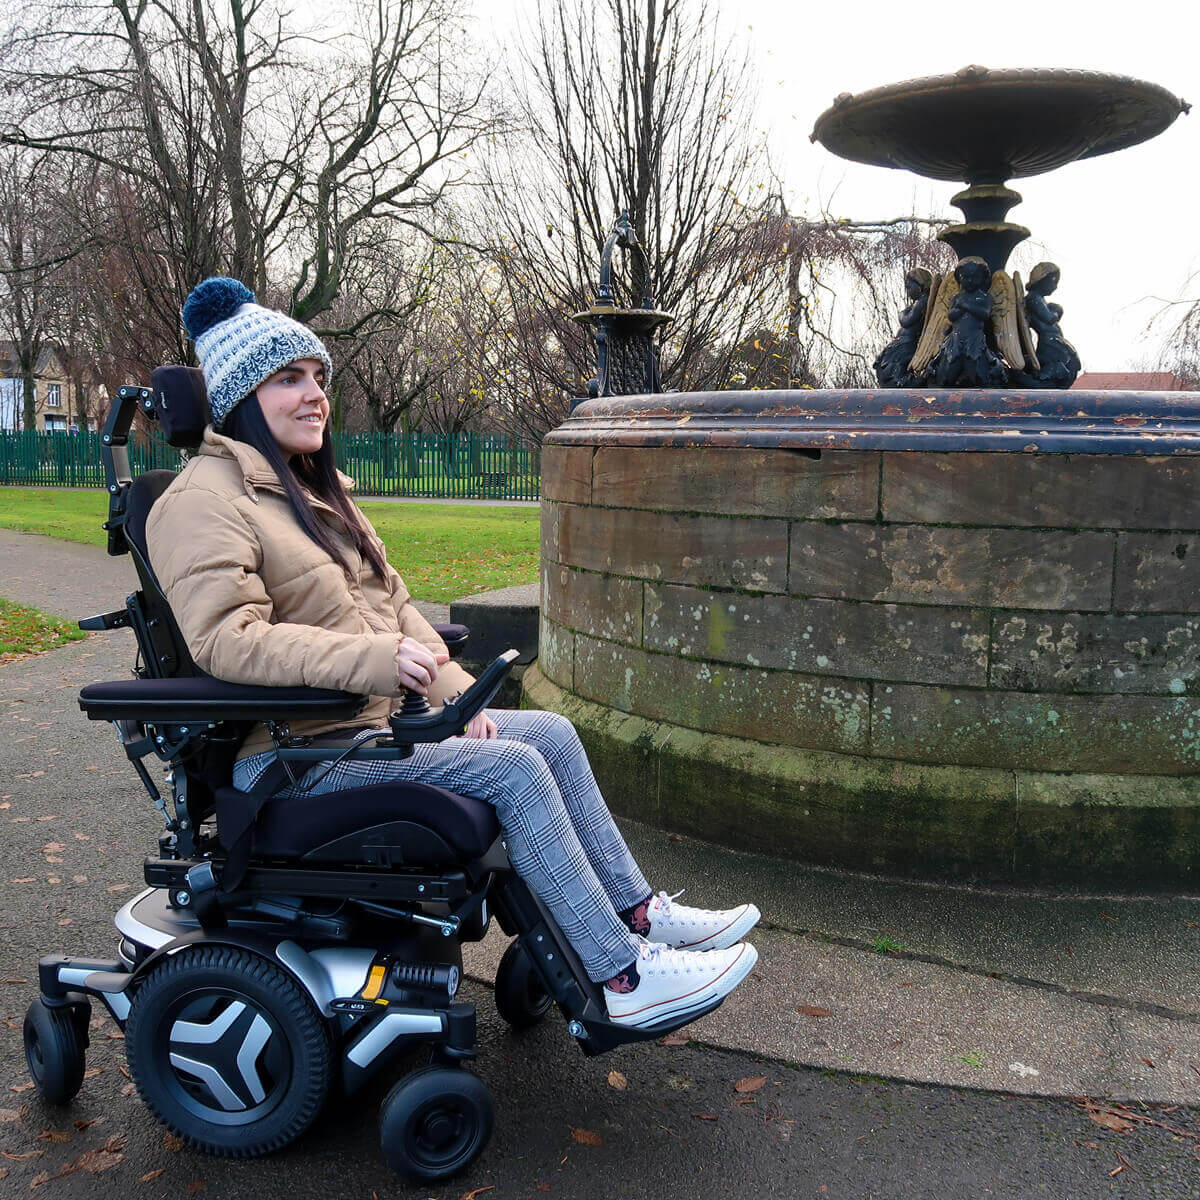 Emma, a wheelchair user sitting in a black and silver Permobil M3 wheelchair in a park. She is sitting next to an old water fountain in a park. She is wearing a woolly hat, puffy jacket, black and white check trousers and white converse shoes. Emma is smiling.